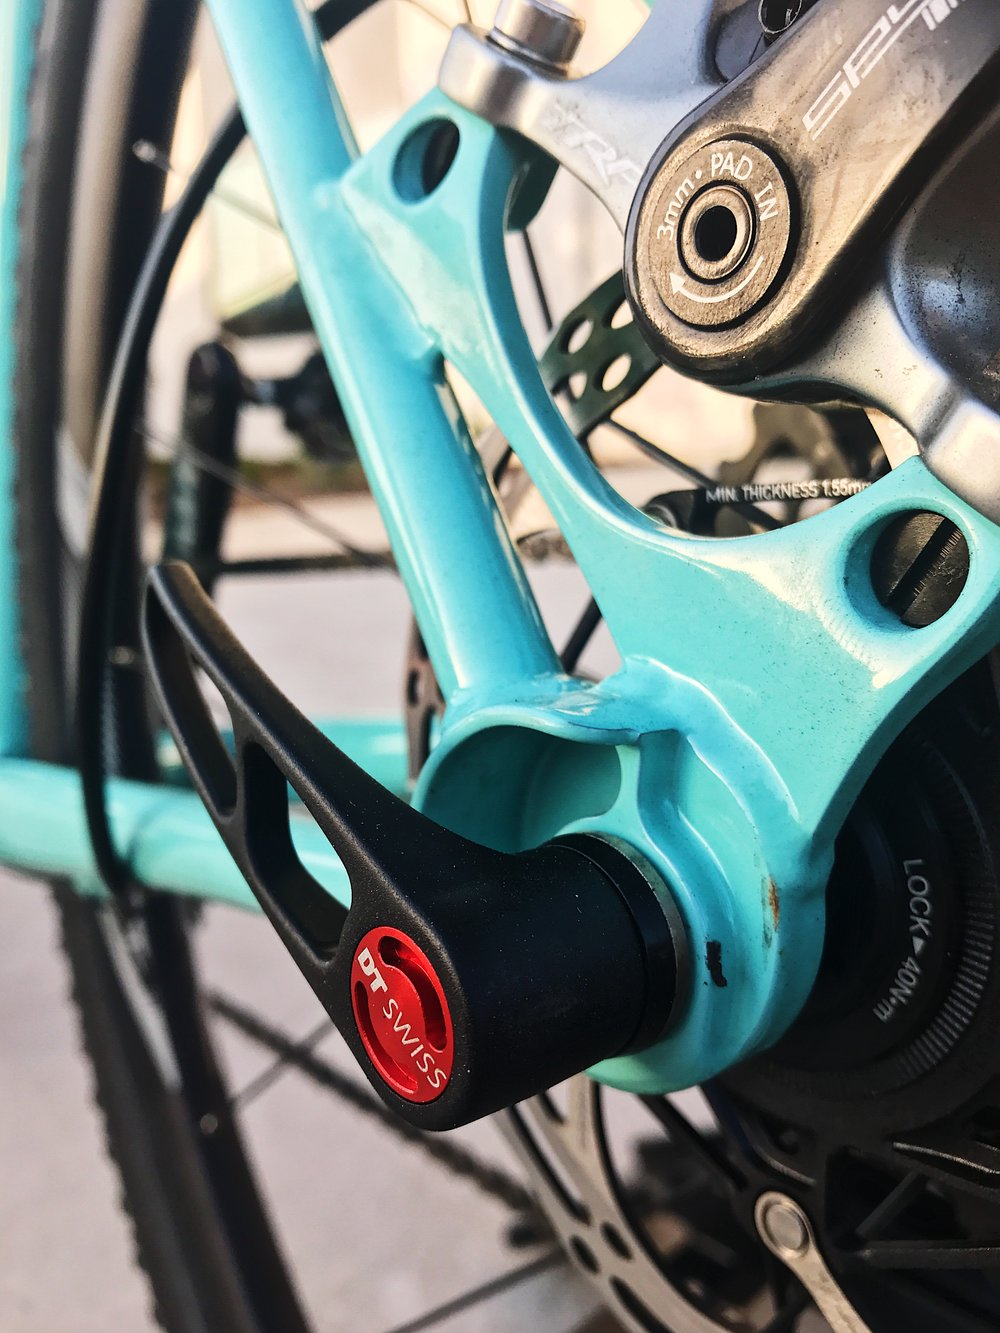 TRP Spyre brakes and 12mm thru-axle